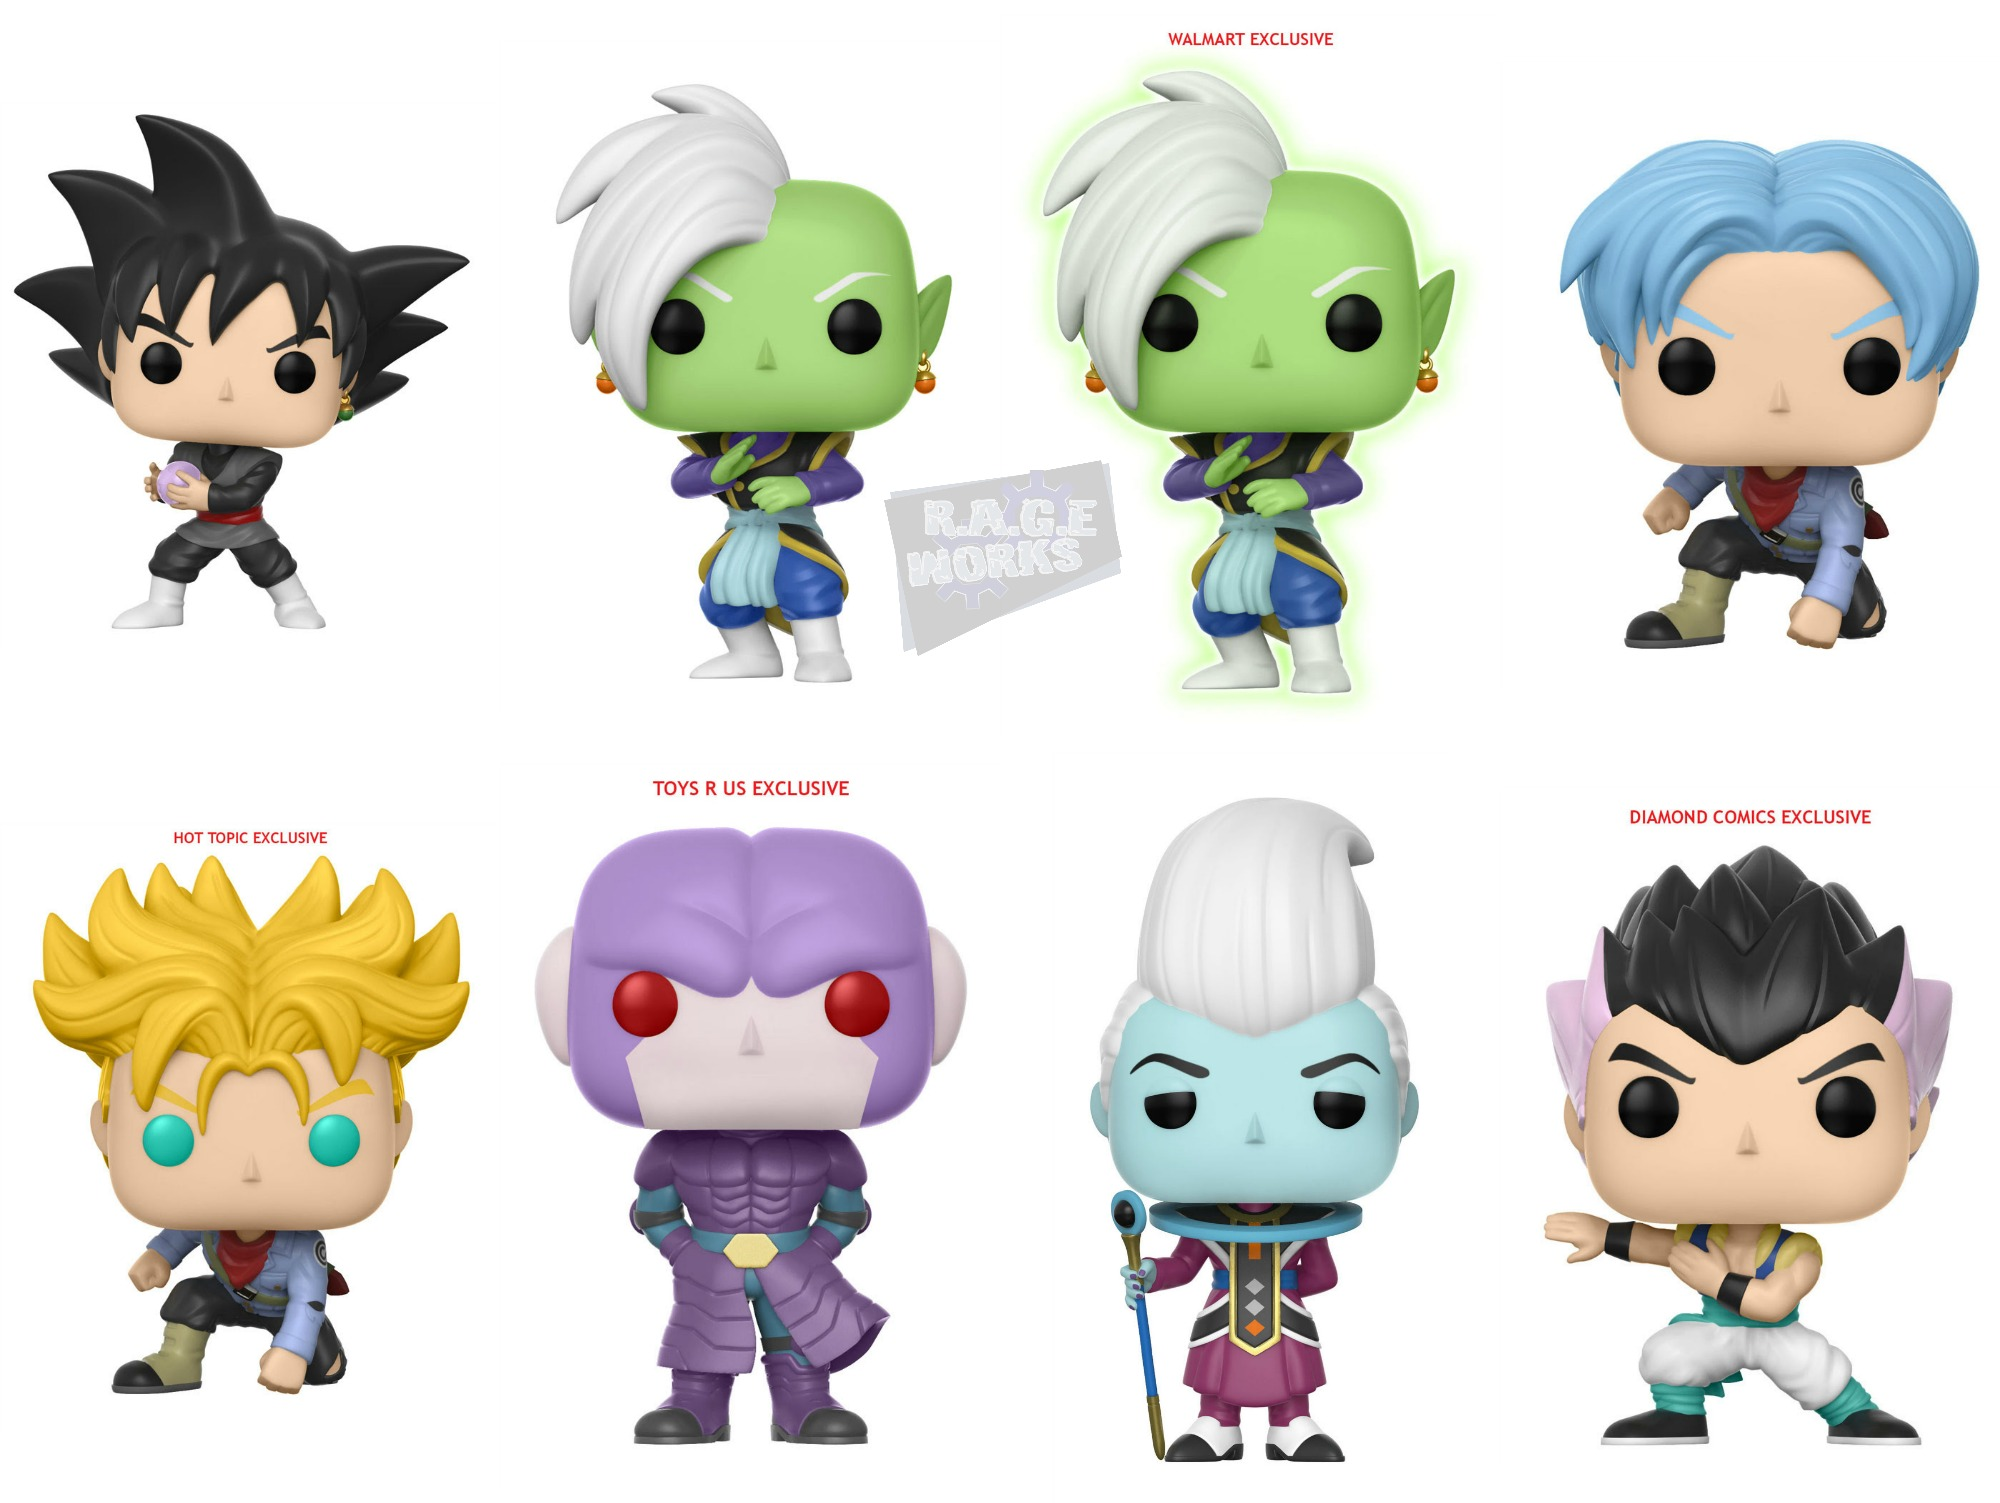 Funko Announces Dragon Ball Super Pop Line Rage Works